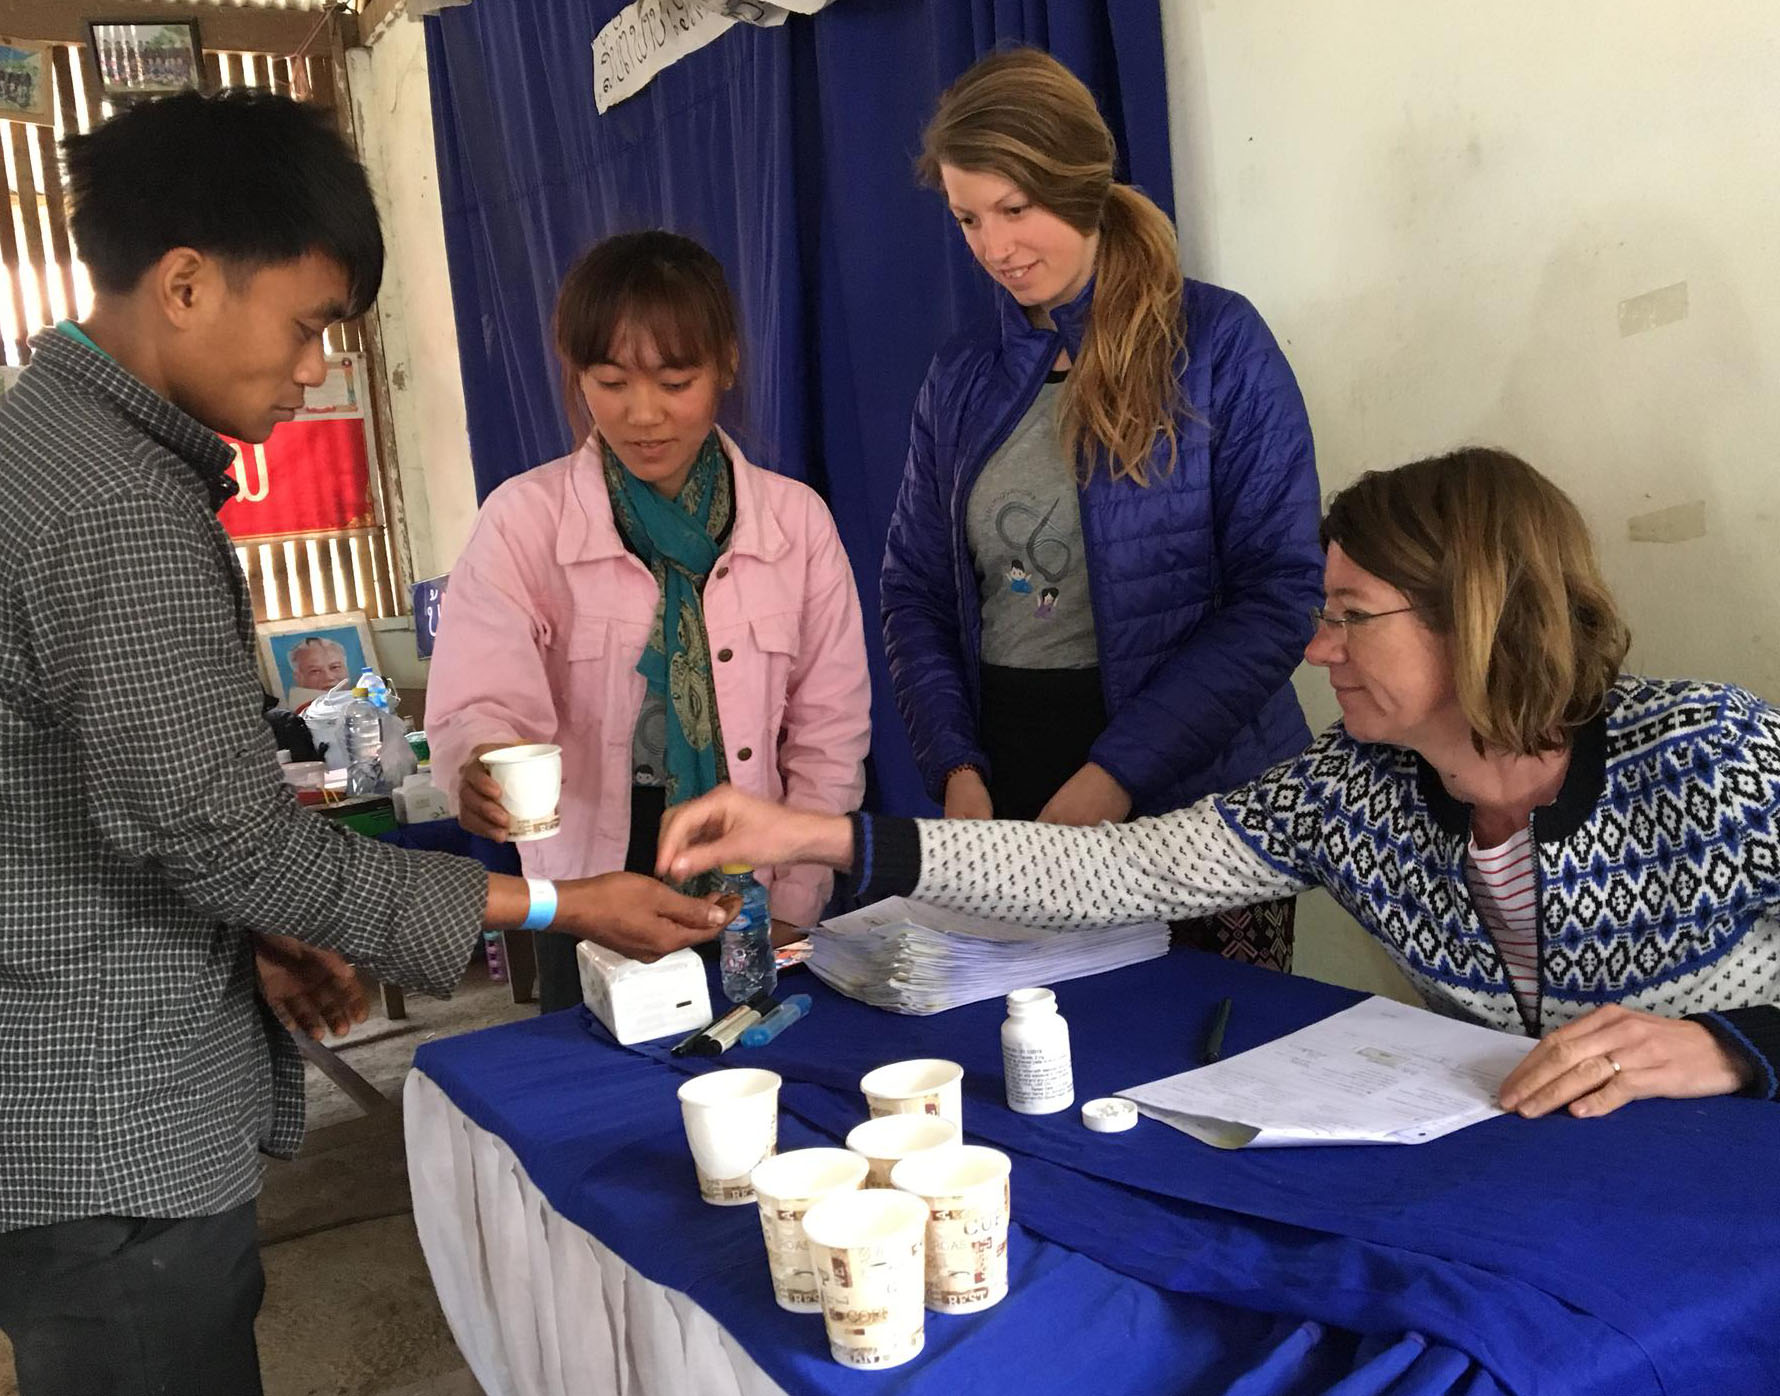 Jennifer Keiser and team in Laos